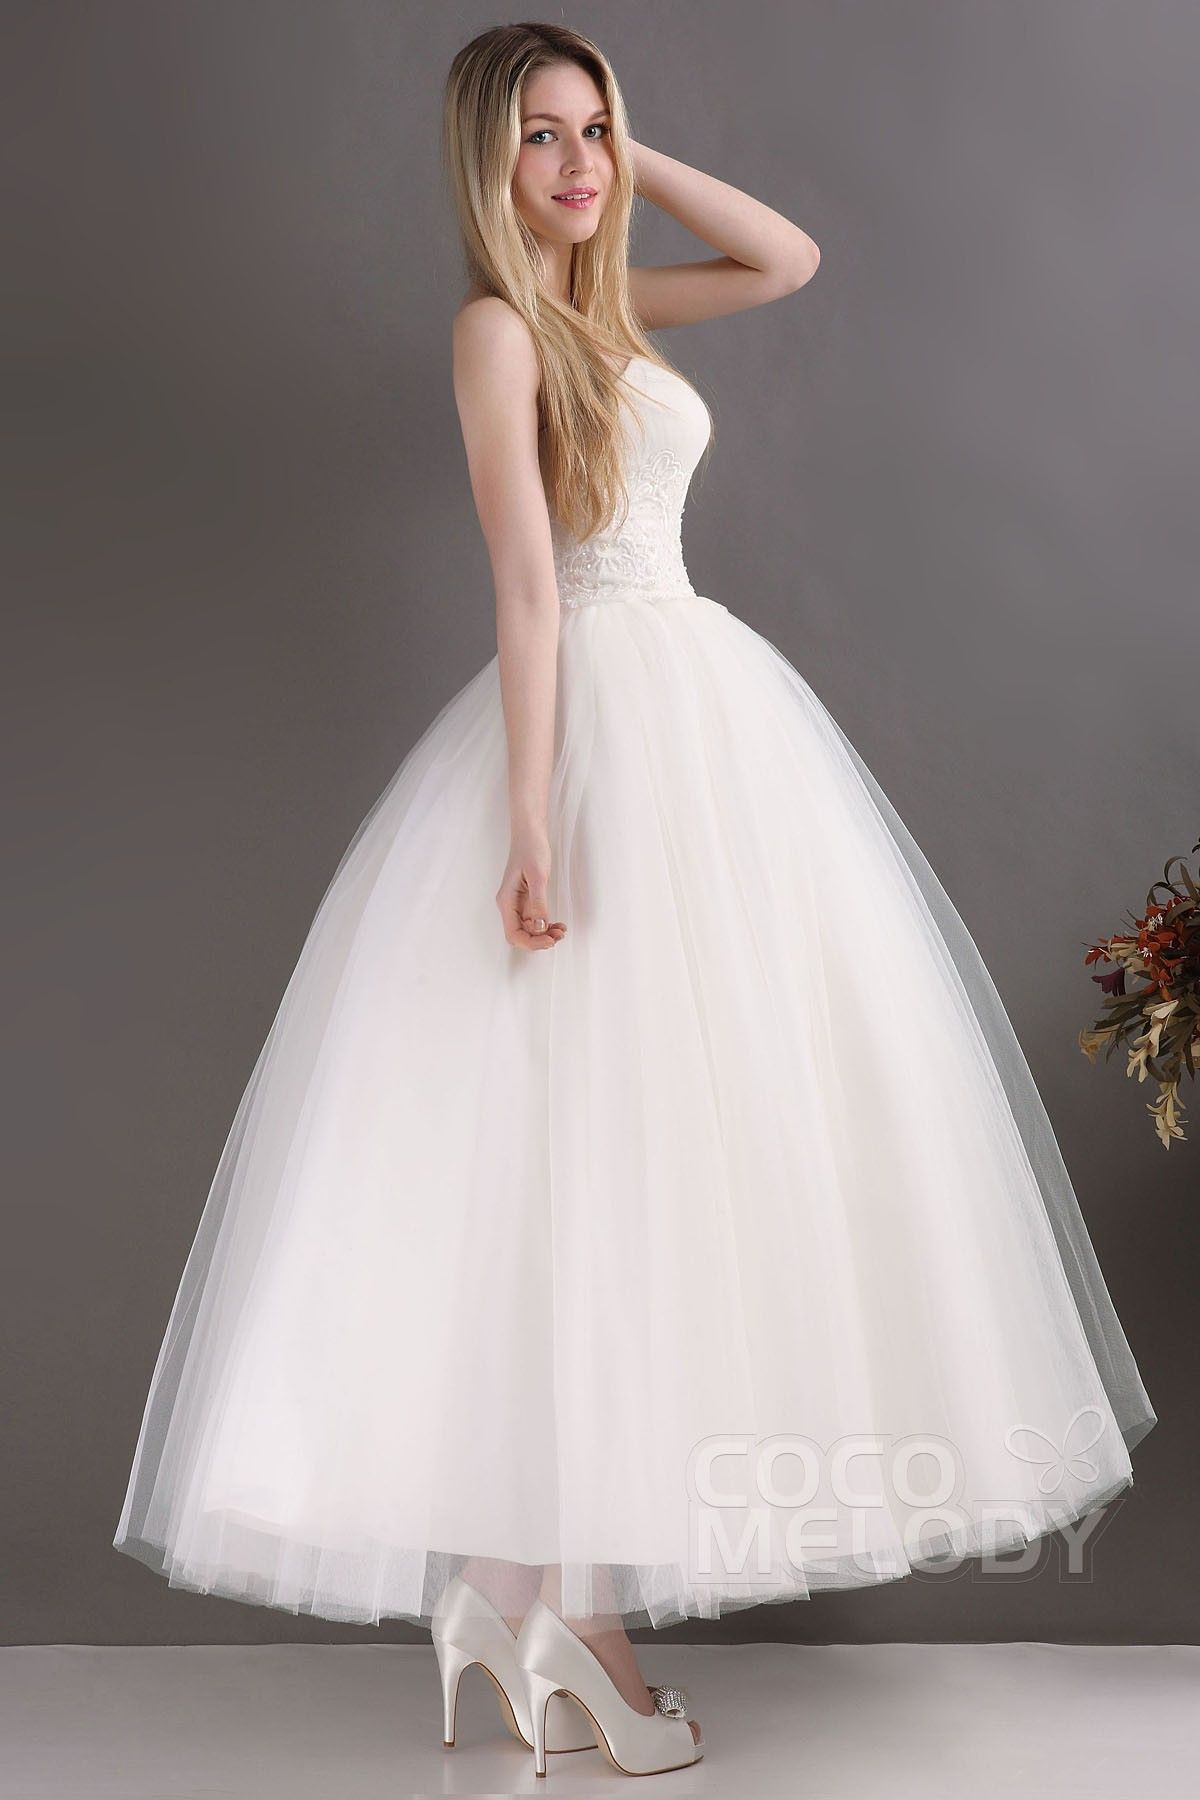 Usd 199 Princess Ankle Length Tulle Wedding Dress Cwla13001 Ball Gown Wedding Dress Tulle Wedding Dress Ball Gowns Wedding [ 1800 x 1200 Pixel ]